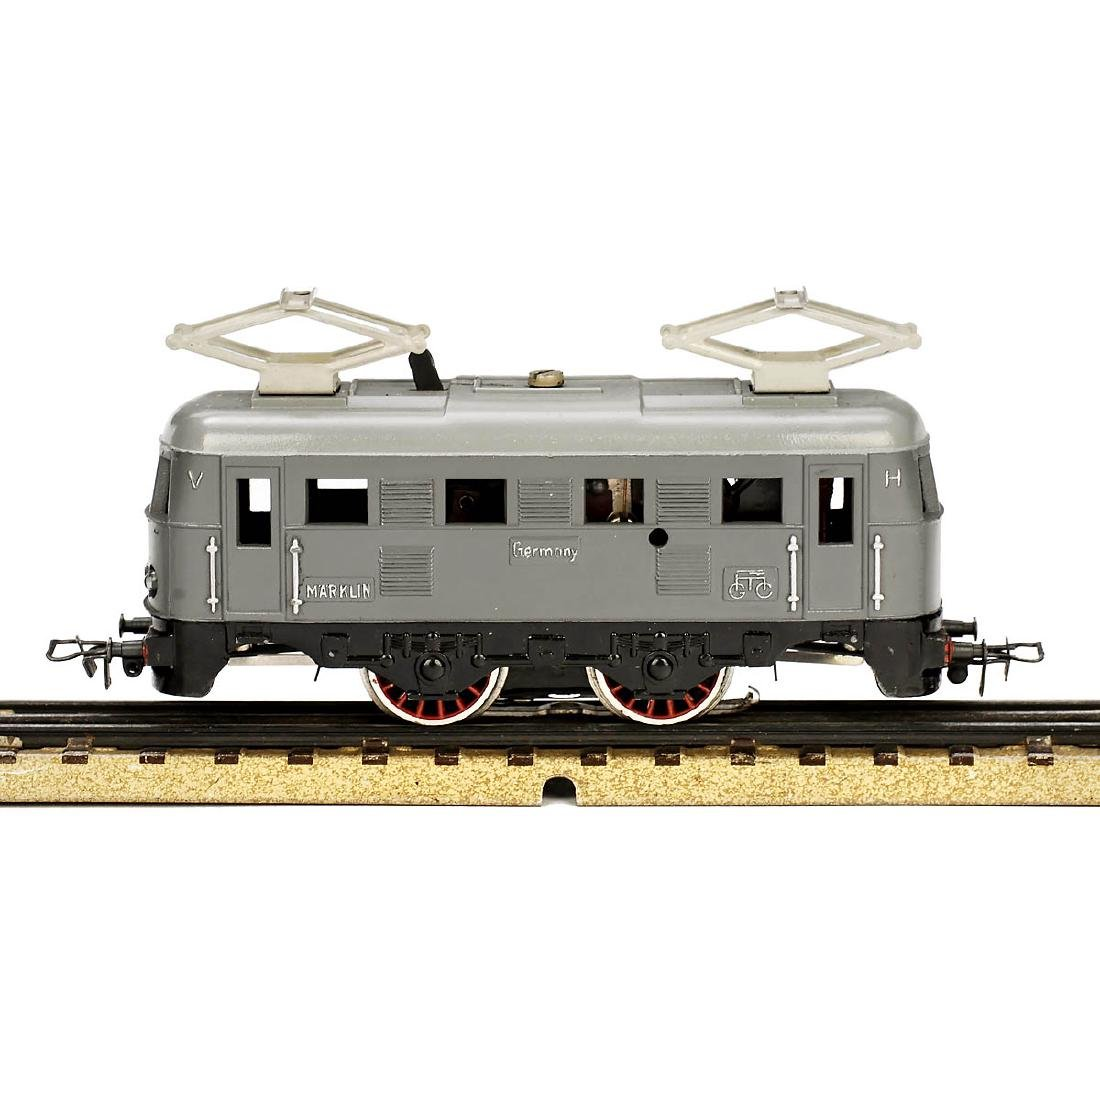 Märklin RS 790 Electric Locomotive, 1949 - 2